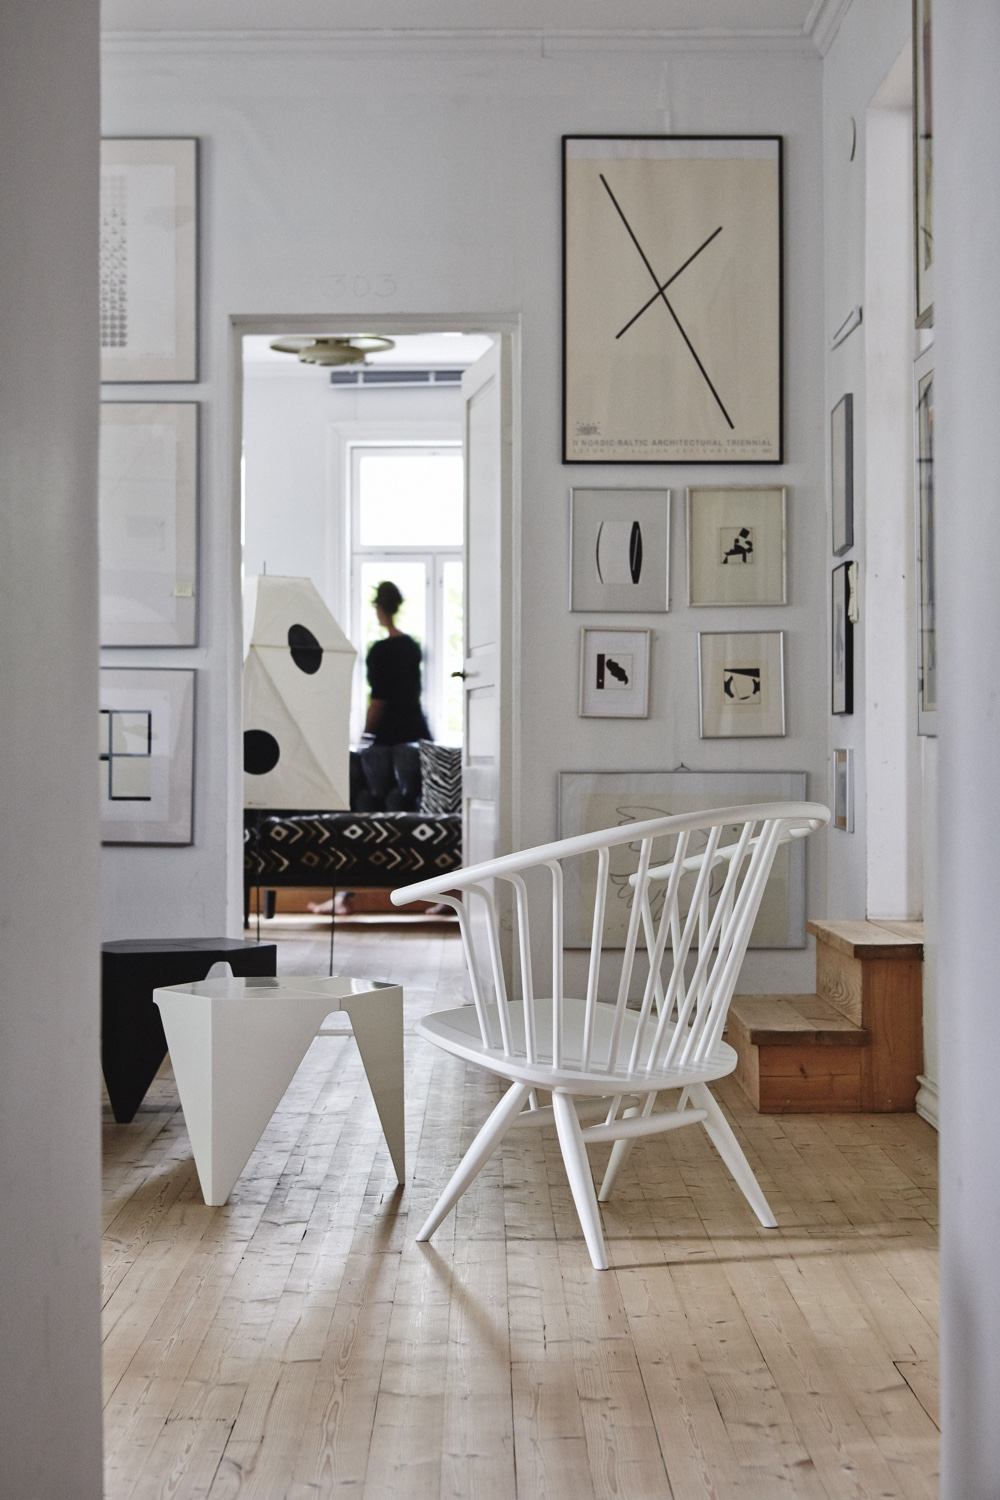 Crinolette Armchair in lacquered white. Image courtesy of Artek.